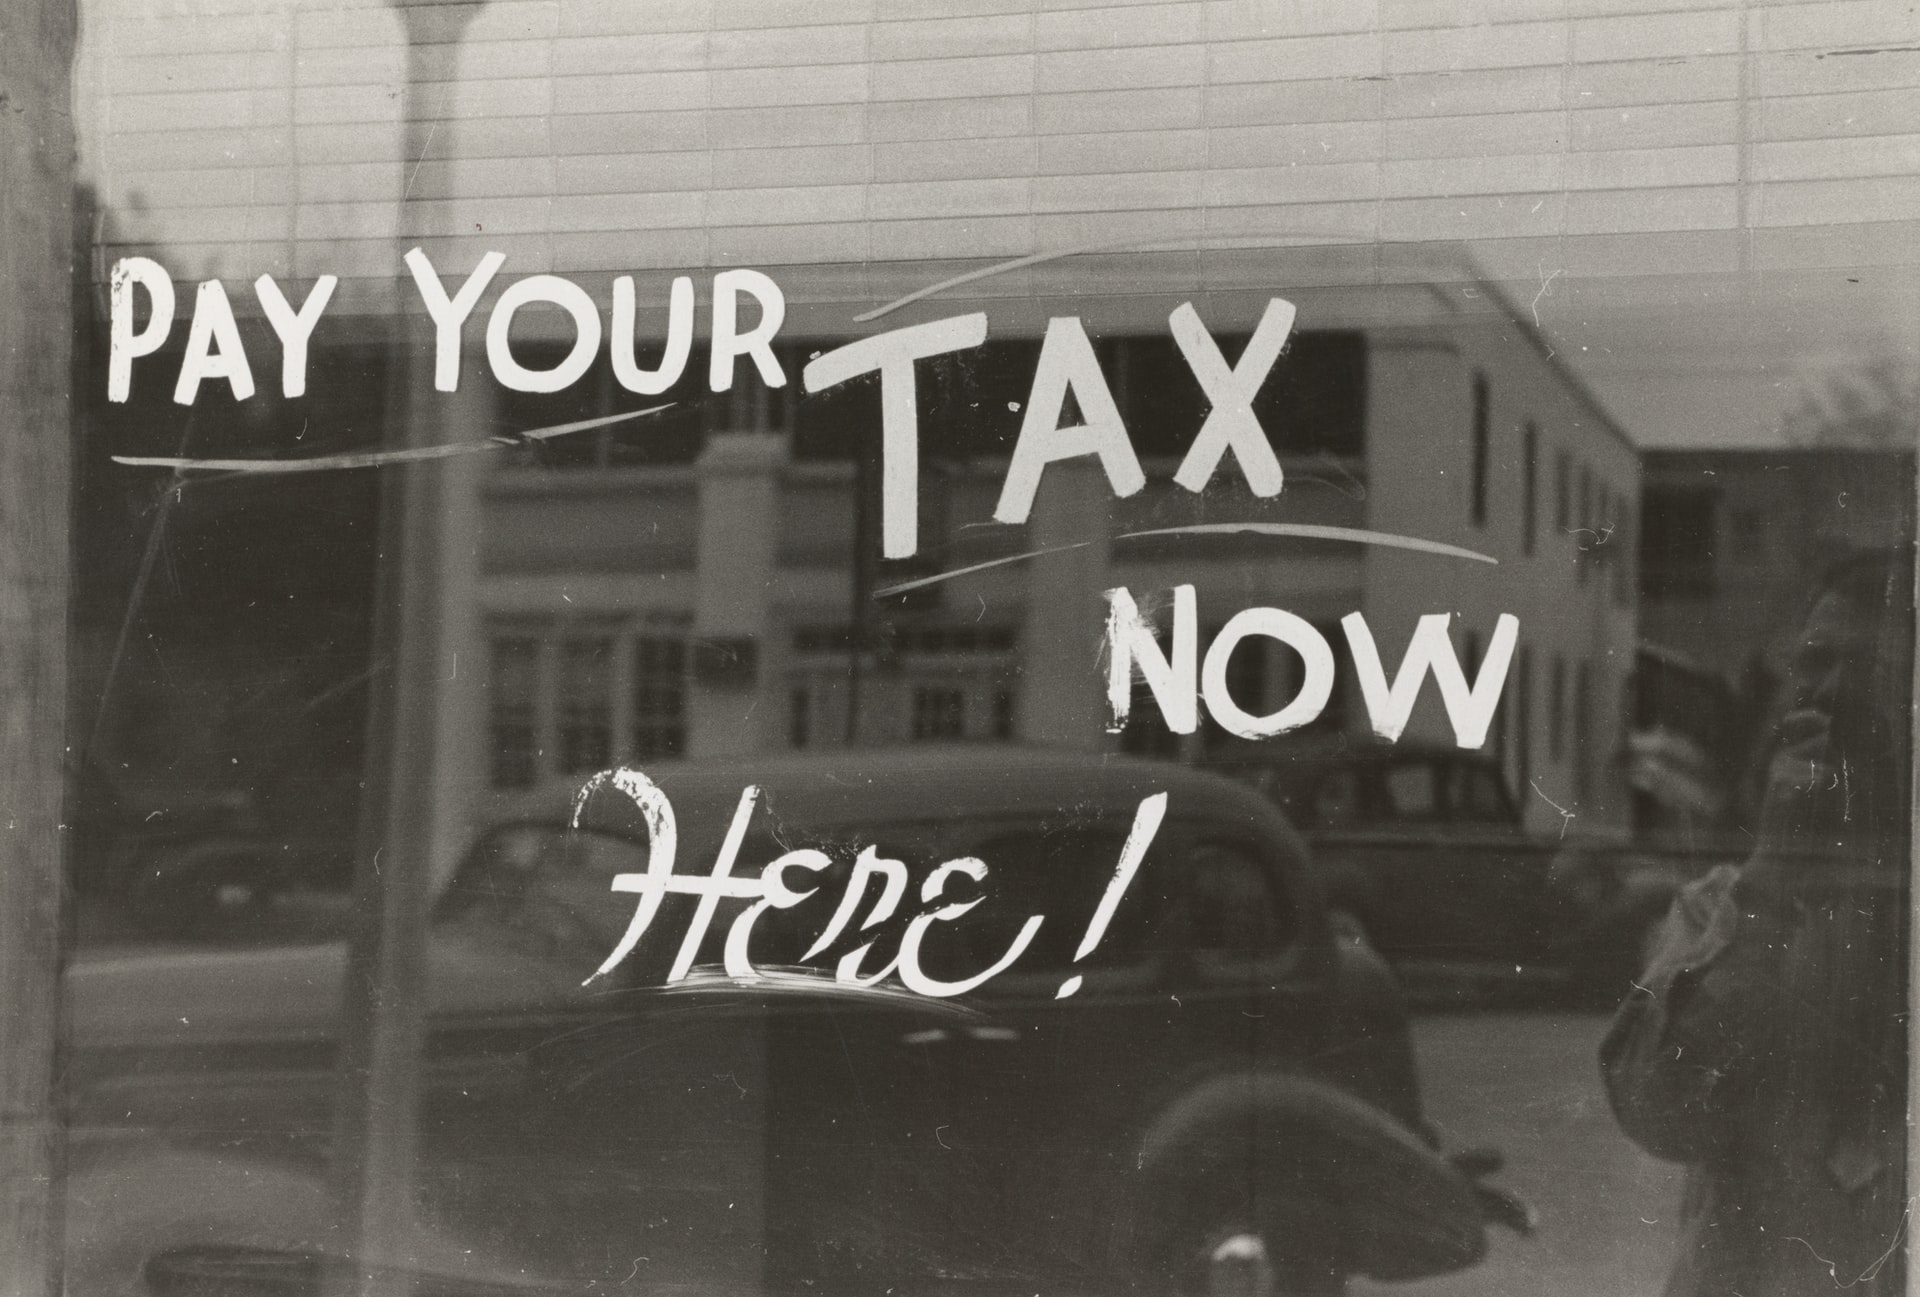 Pay your tax here now written on a window